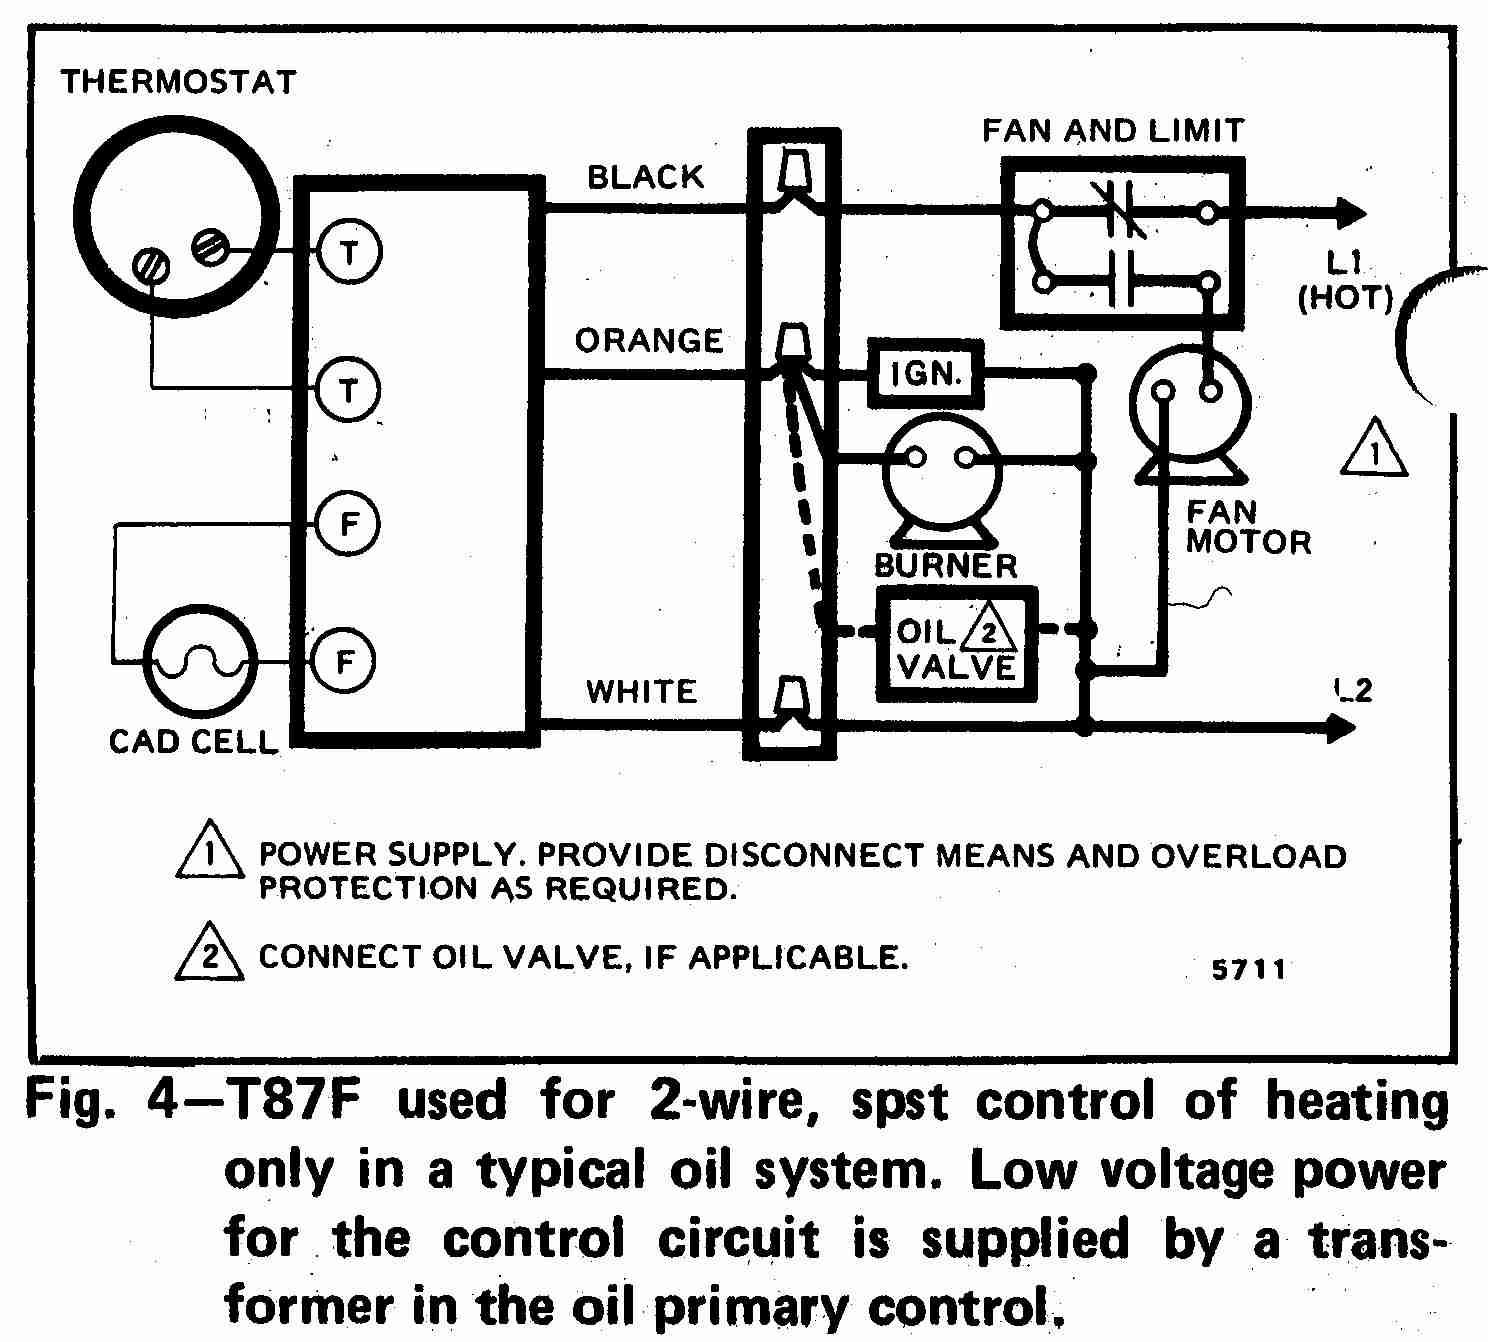 hight resolution of wiring diagrams for thermostats wiring diagram database blog wiring diagram for thermostat for roof vent wiring